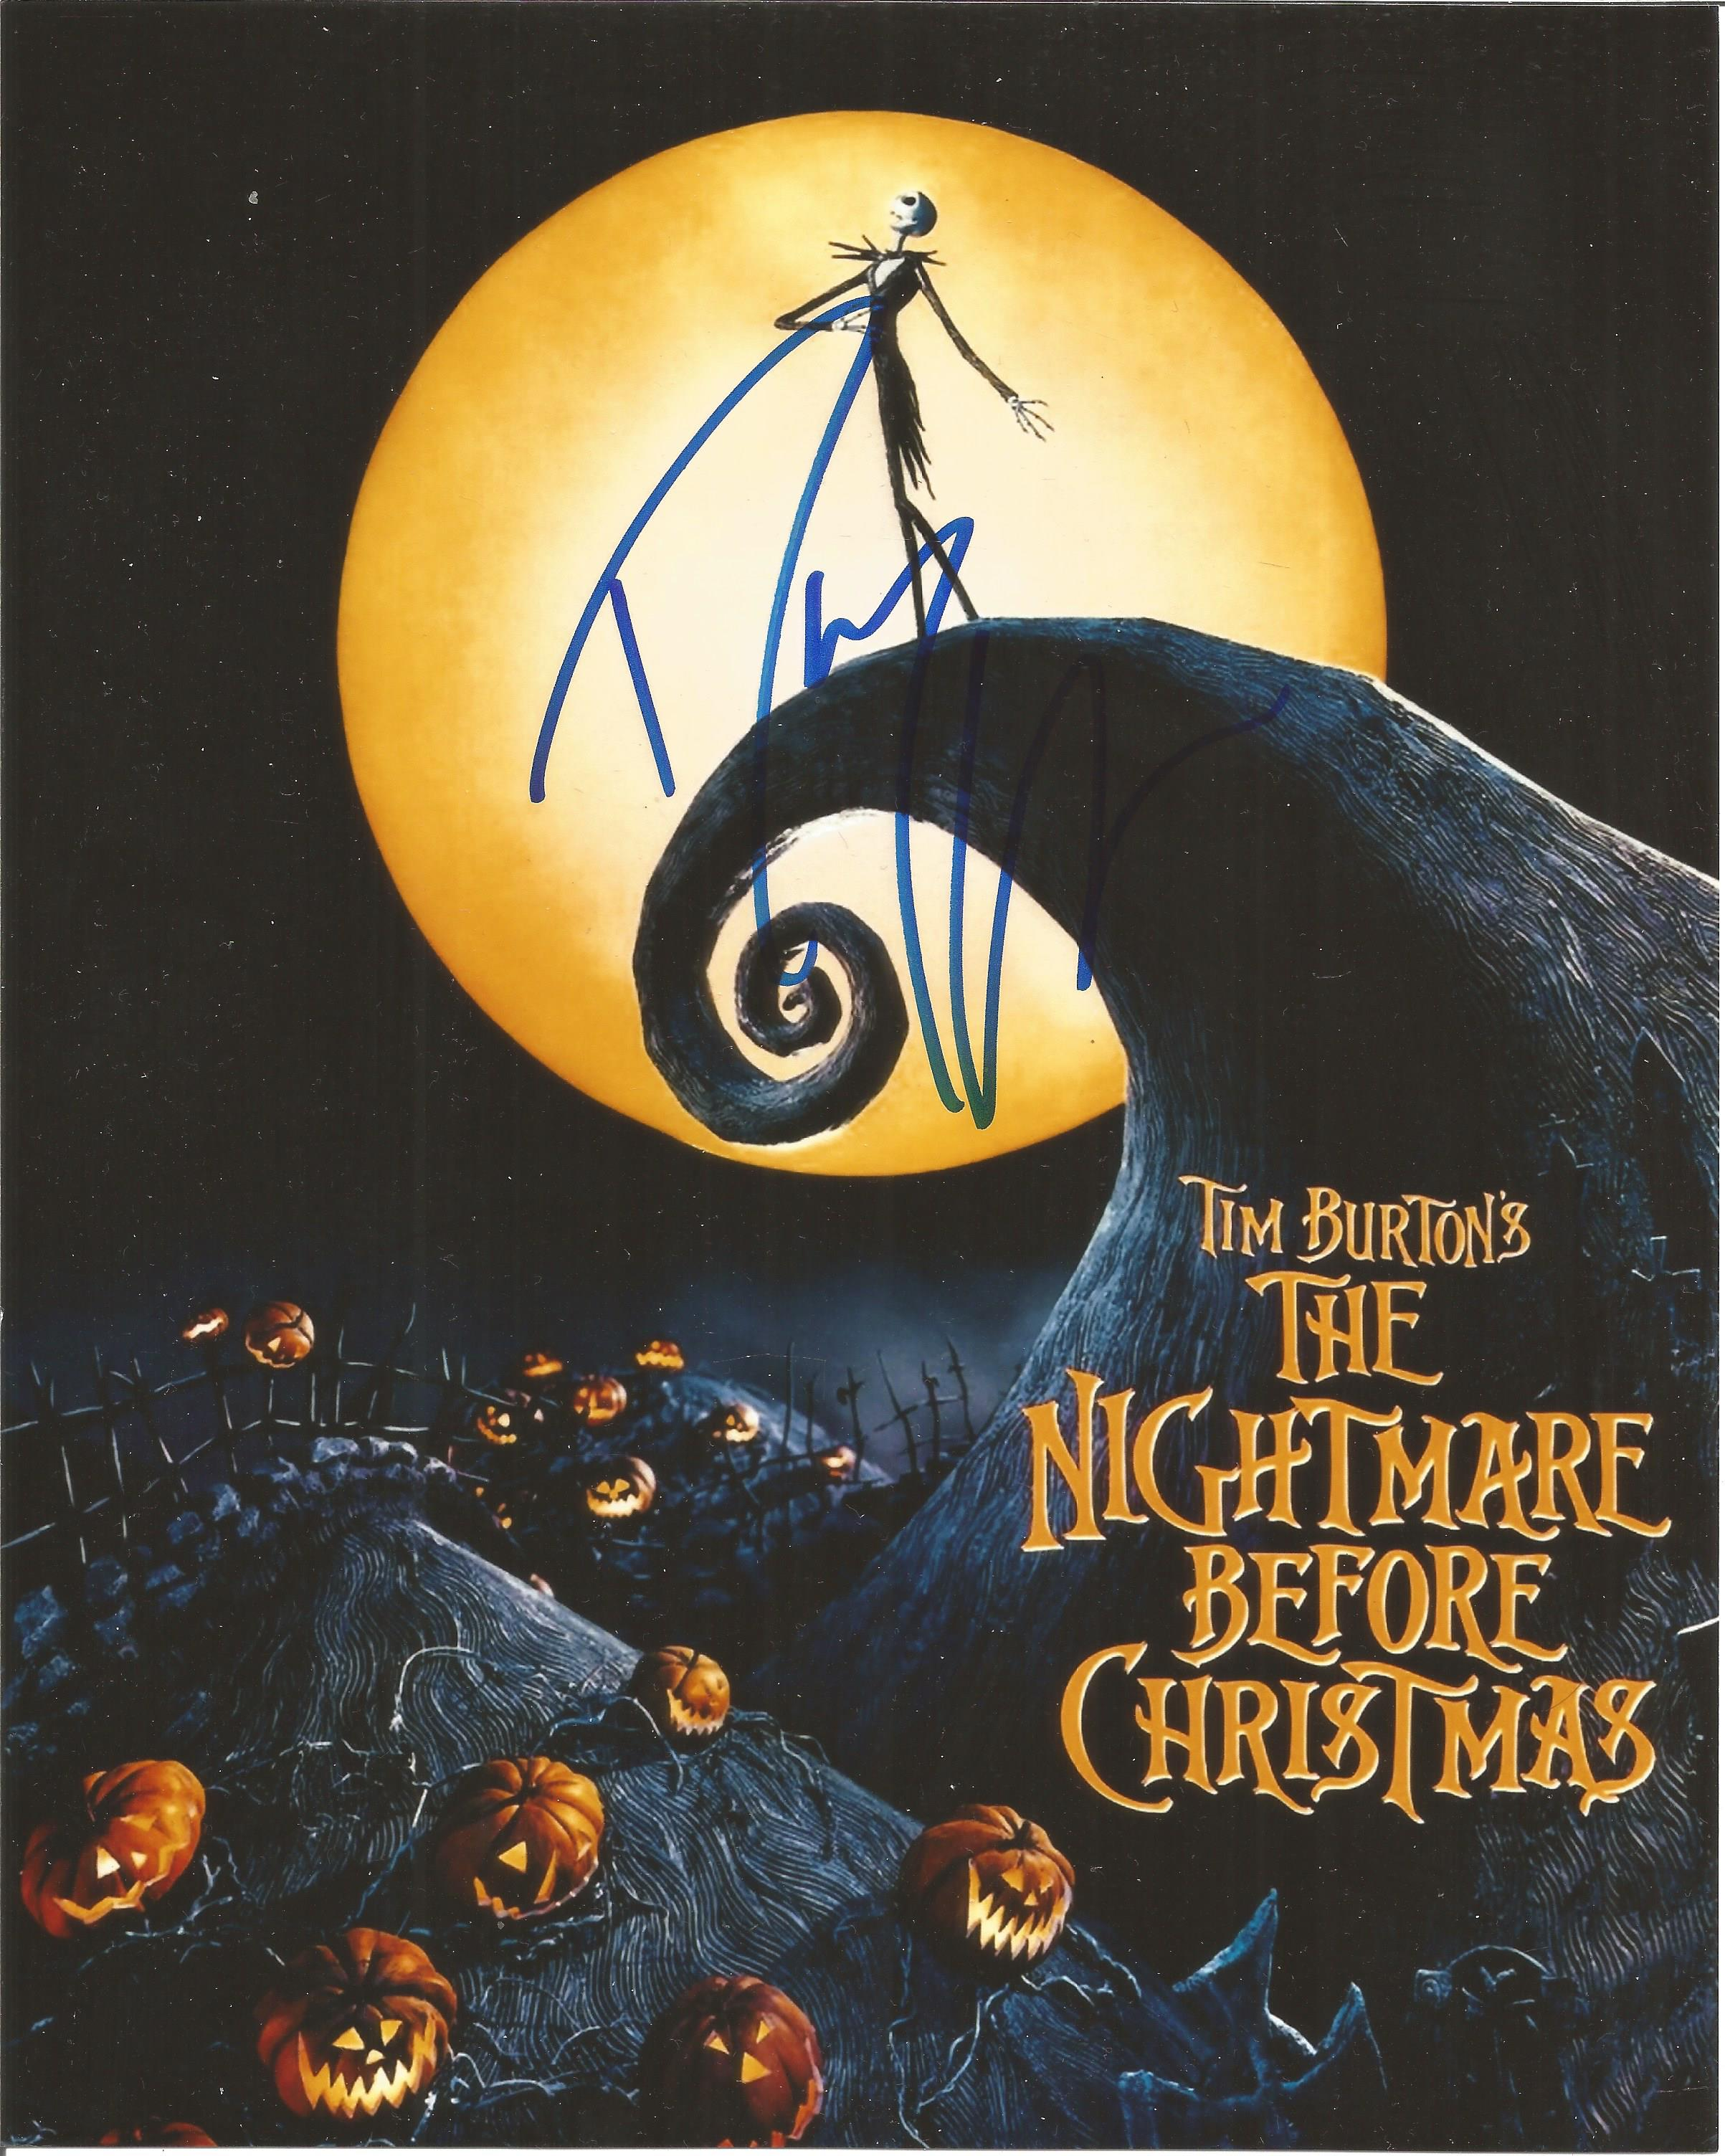 Tim Burton signed The Night Before Christmas colour promo photo. Good Condition. All autographs